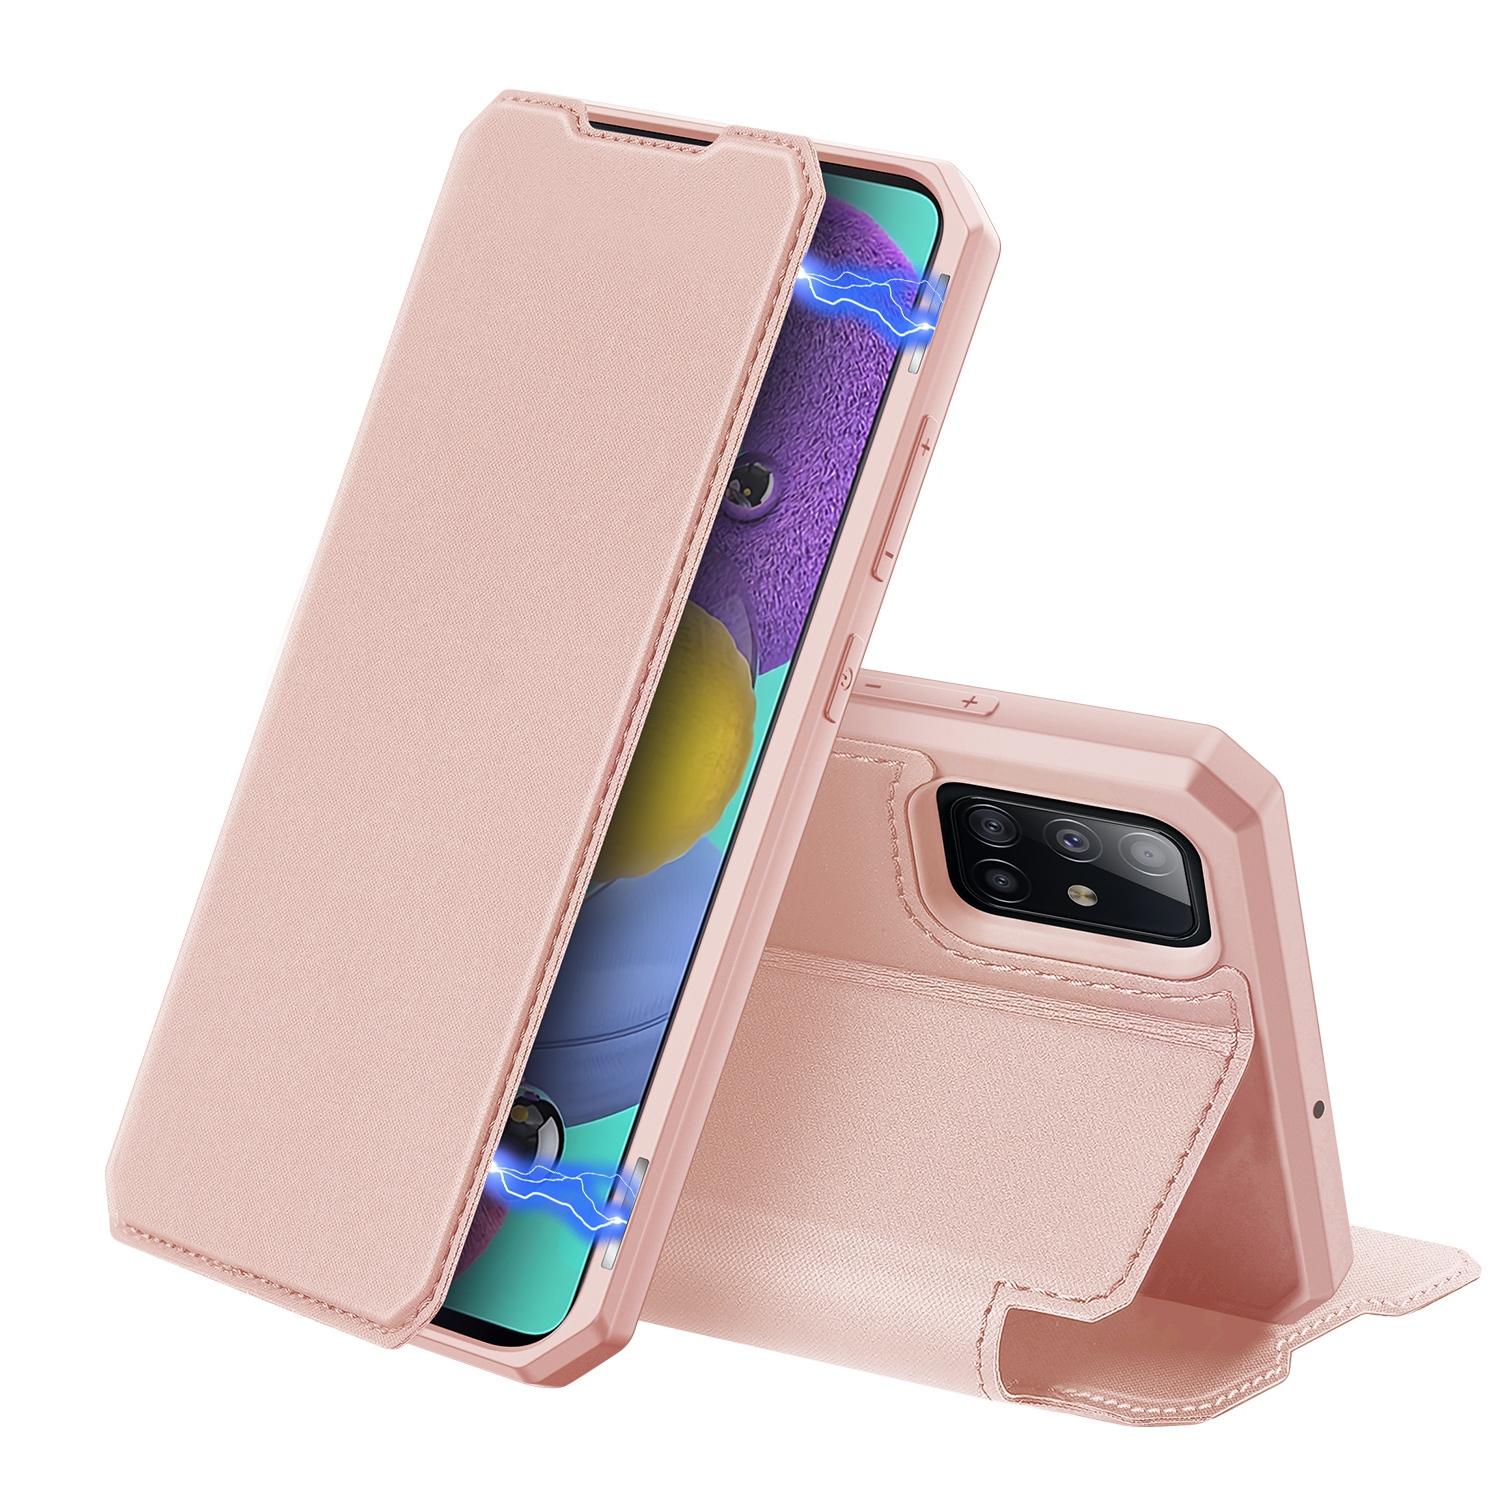 DUX DUCIS For Samsung A51 Leather Mobile Phone Cover Magnetic Protective Case Bracket with Card Slot Pink